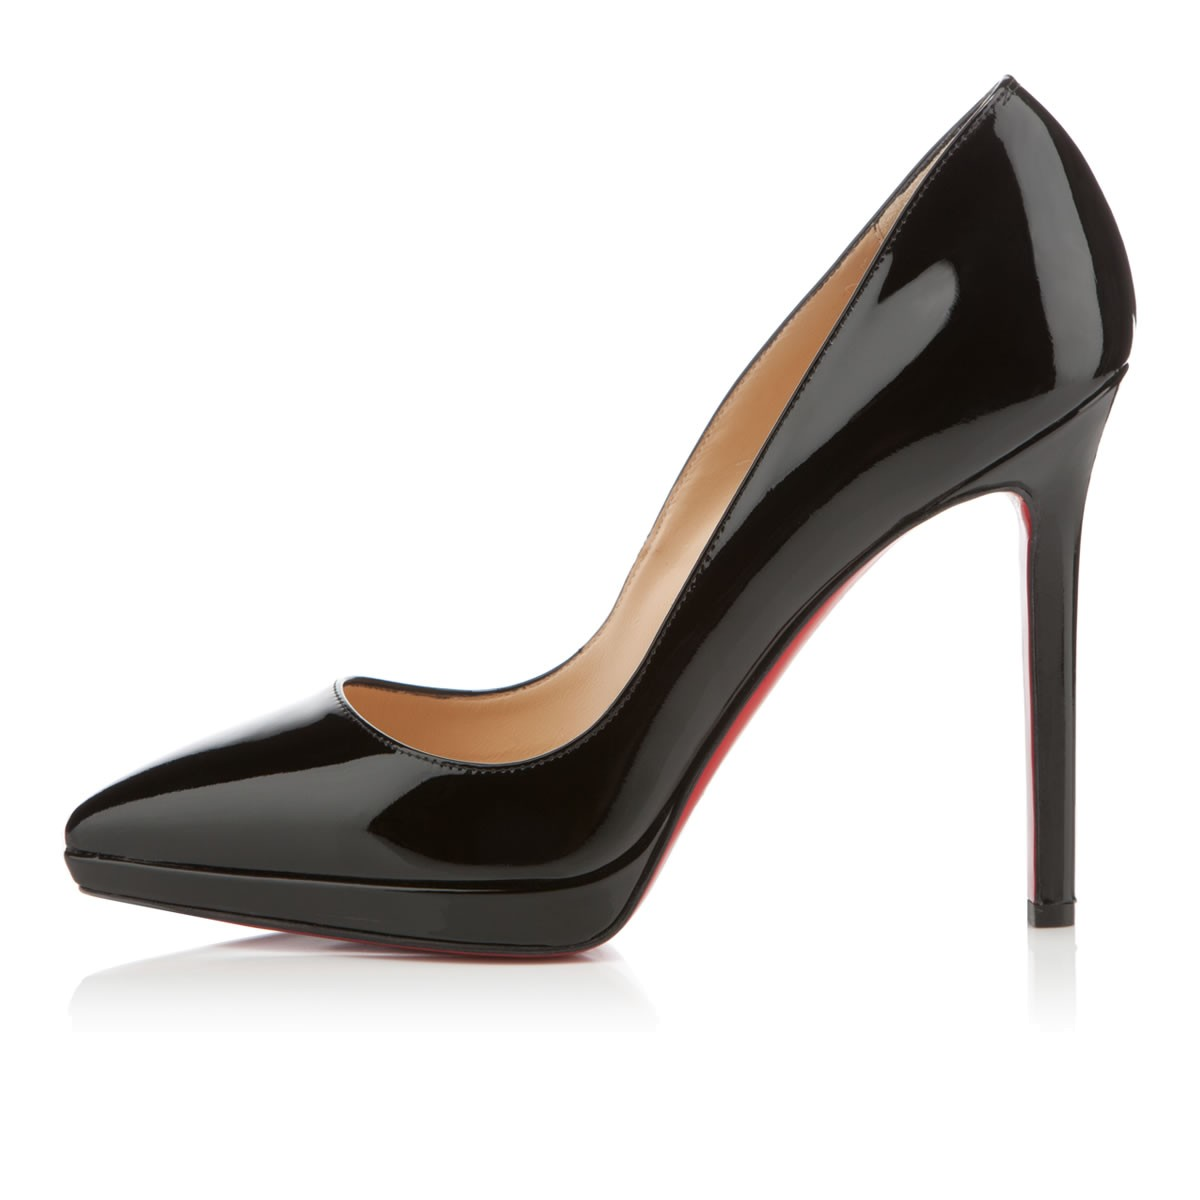 buy popular 38f61 5e756 CHRISTIAN LOUBOUTIN PIGALLE PLATO 120MM BLACK PATENT - Reed ...